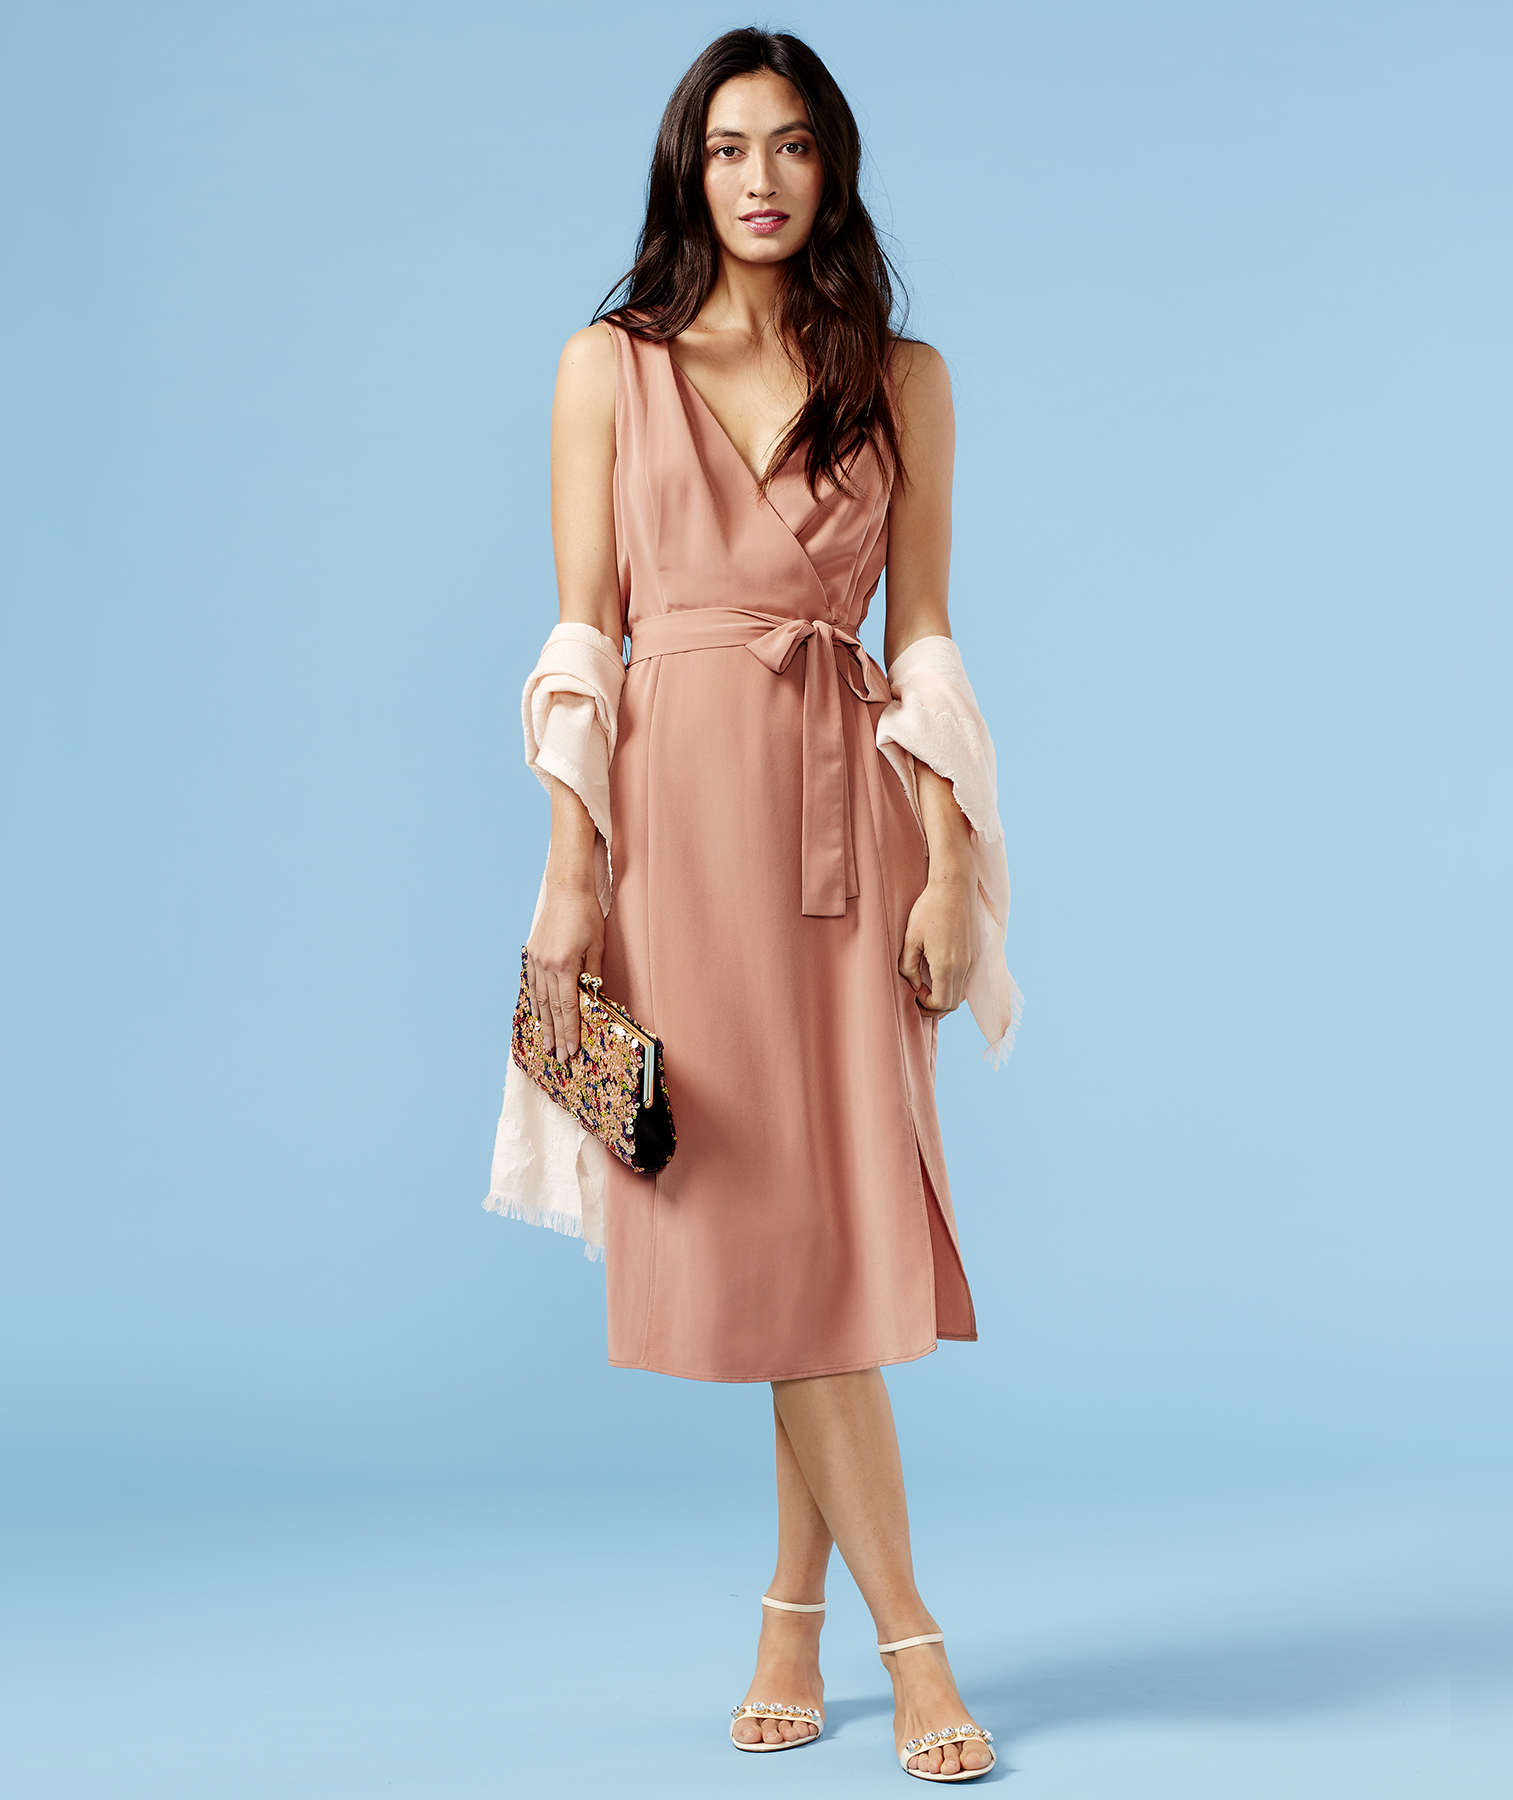 Outfit with blush-colored neutrals